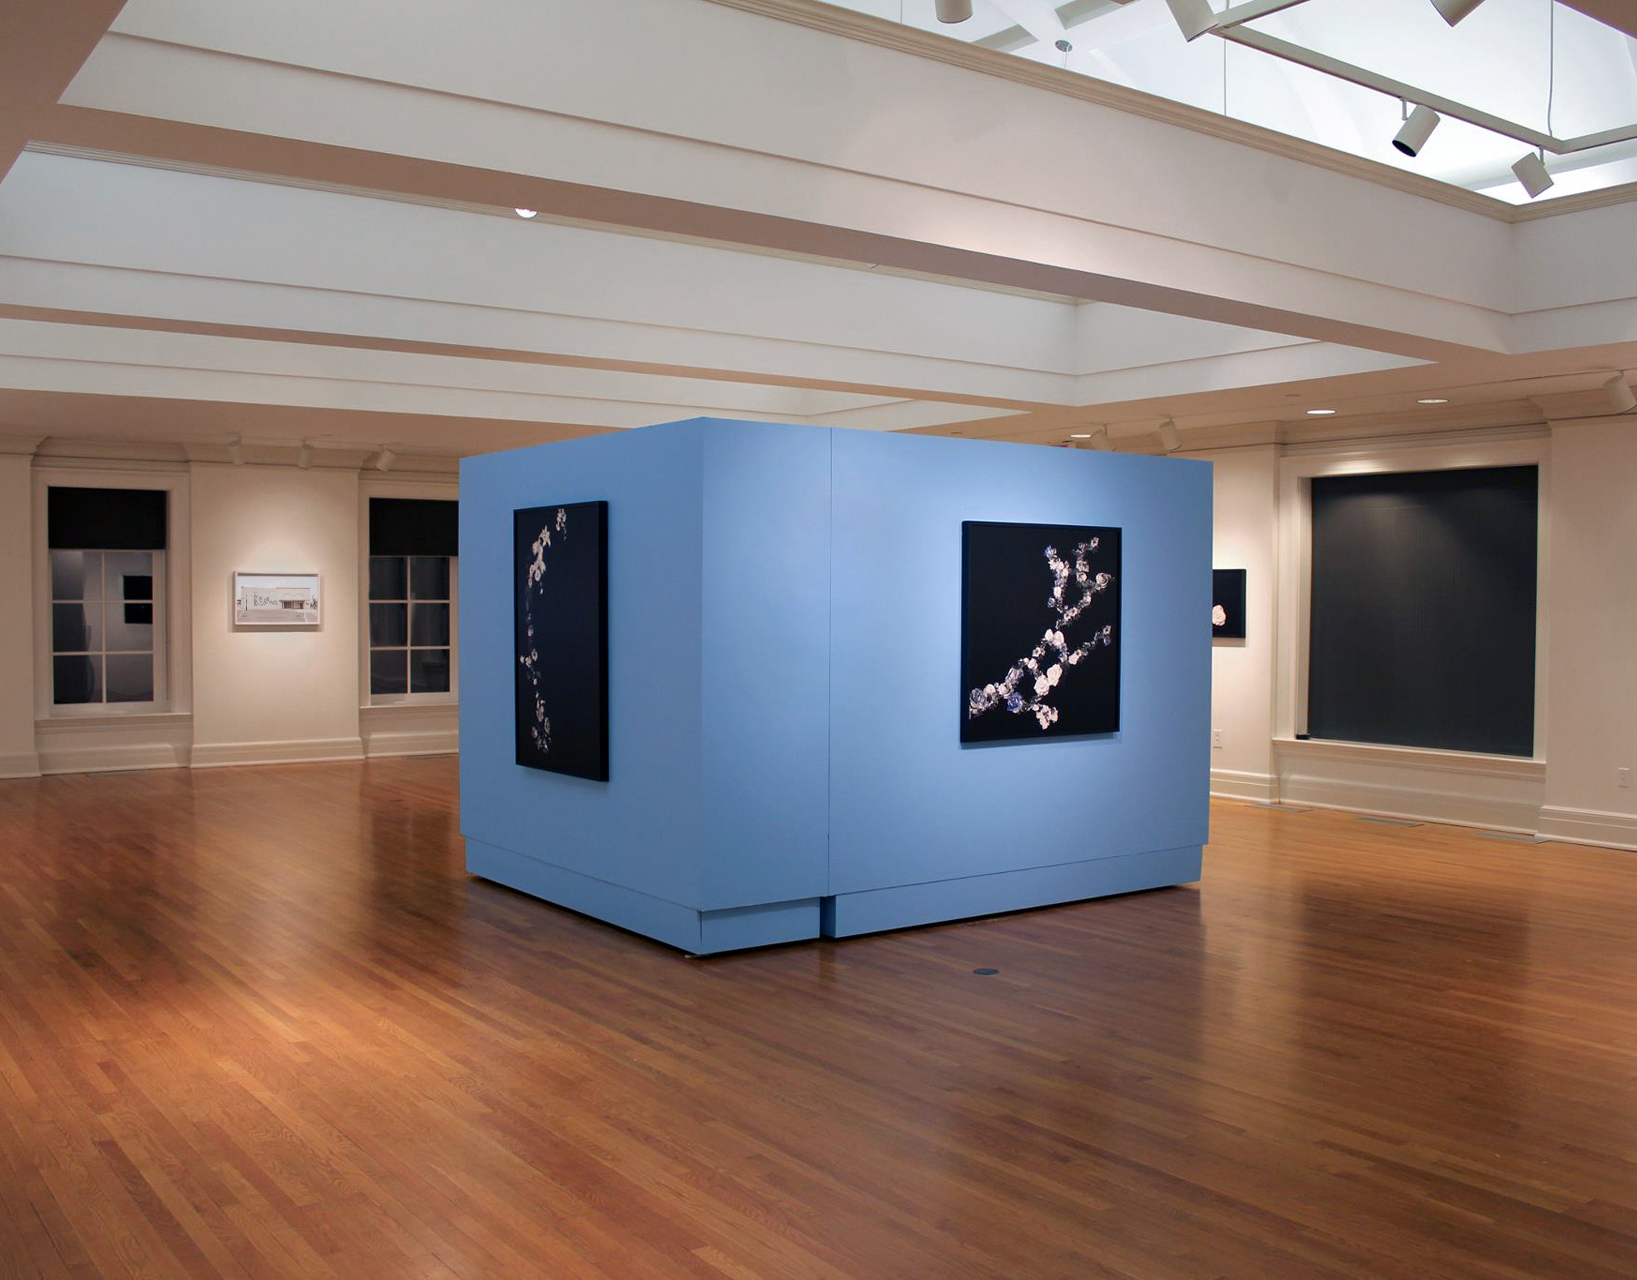 Installation view,  Manifest Destiny , at the Tremaine Gallery at the Hotchkiss School, Lakeville, CT, 2013